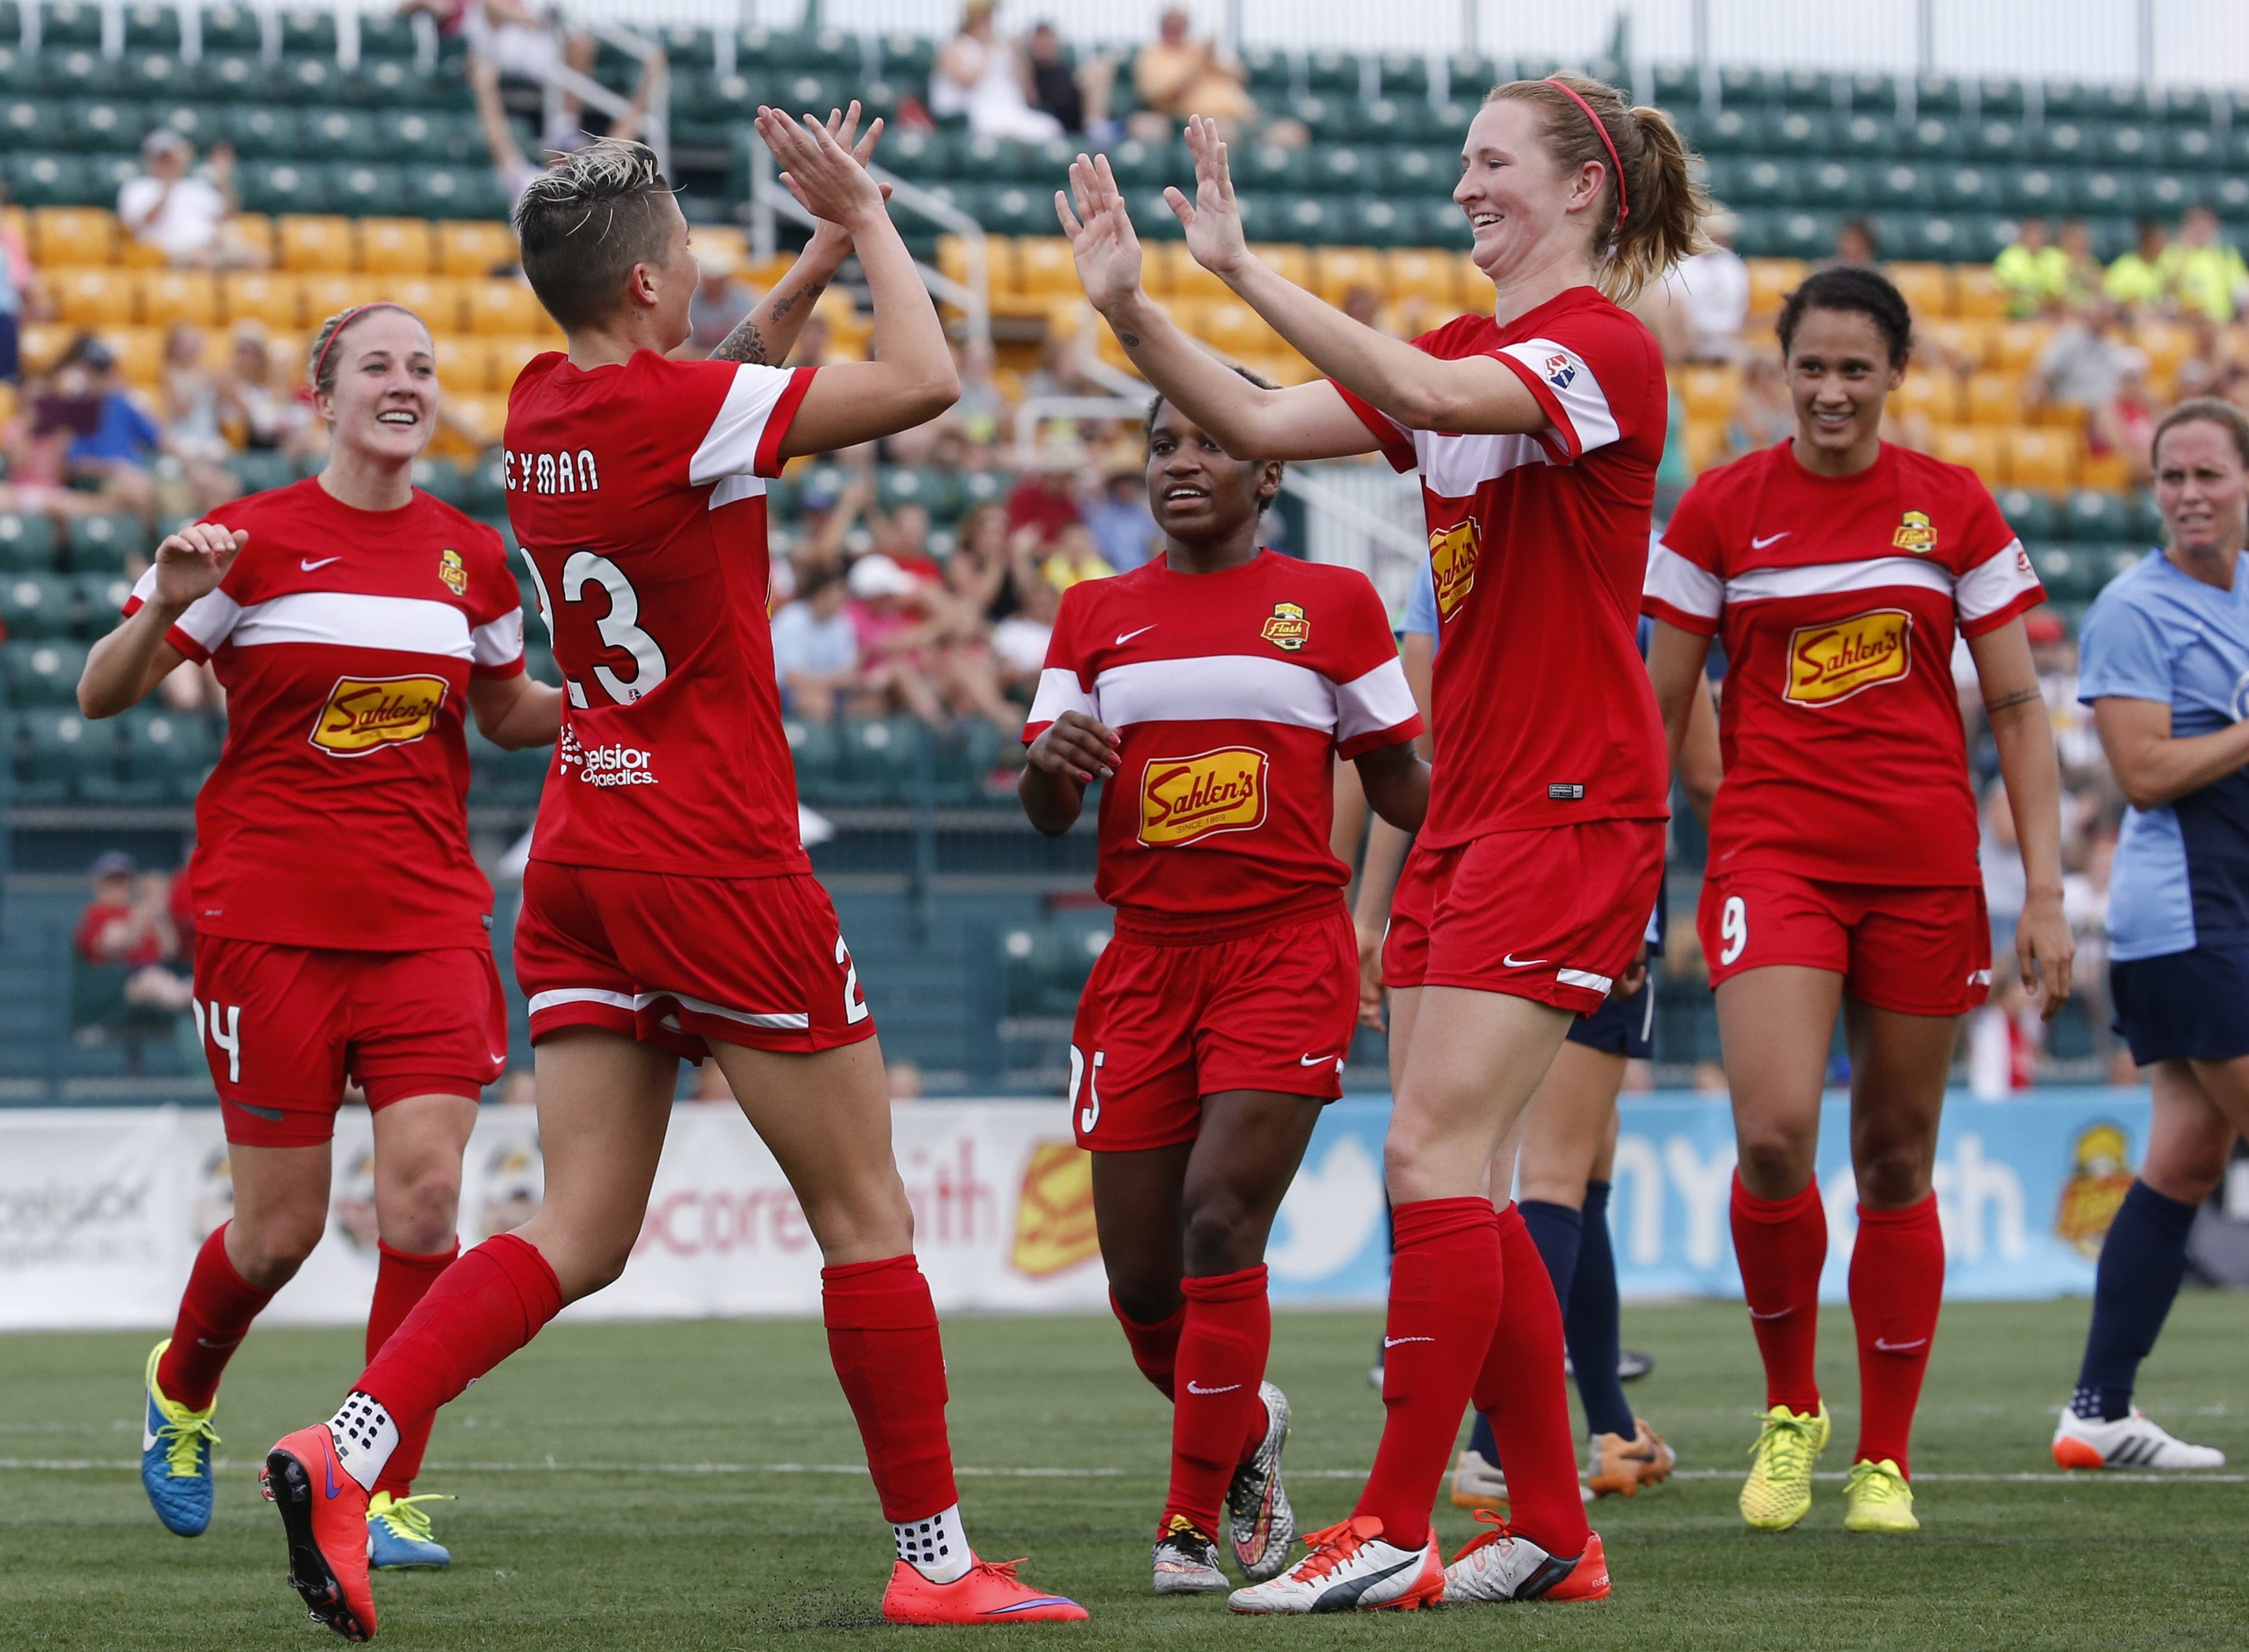 Western New York Flash players celebrate during a game last season at Rhinos Stadium, which was unavailable last week.